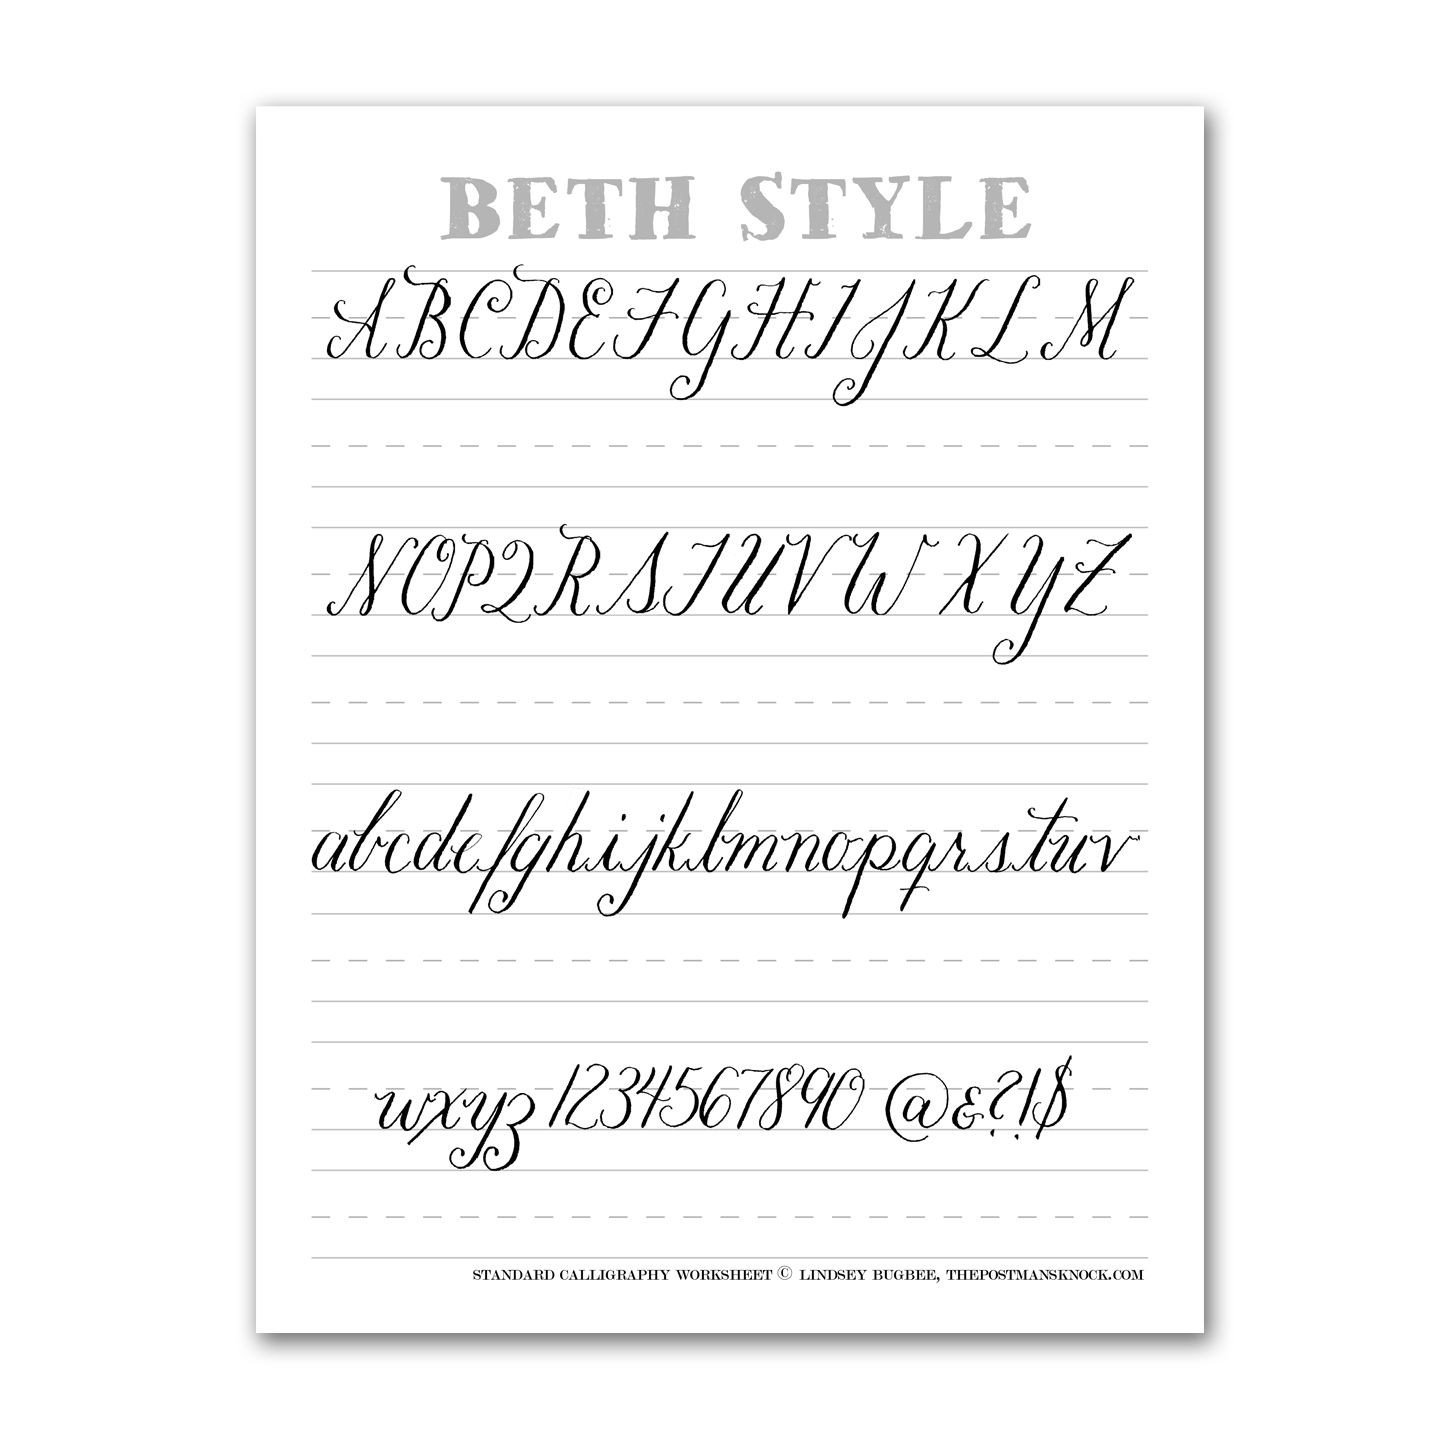 Learn Calligraphy Worksheets Beth Style Calligraphy Standard Worksheet